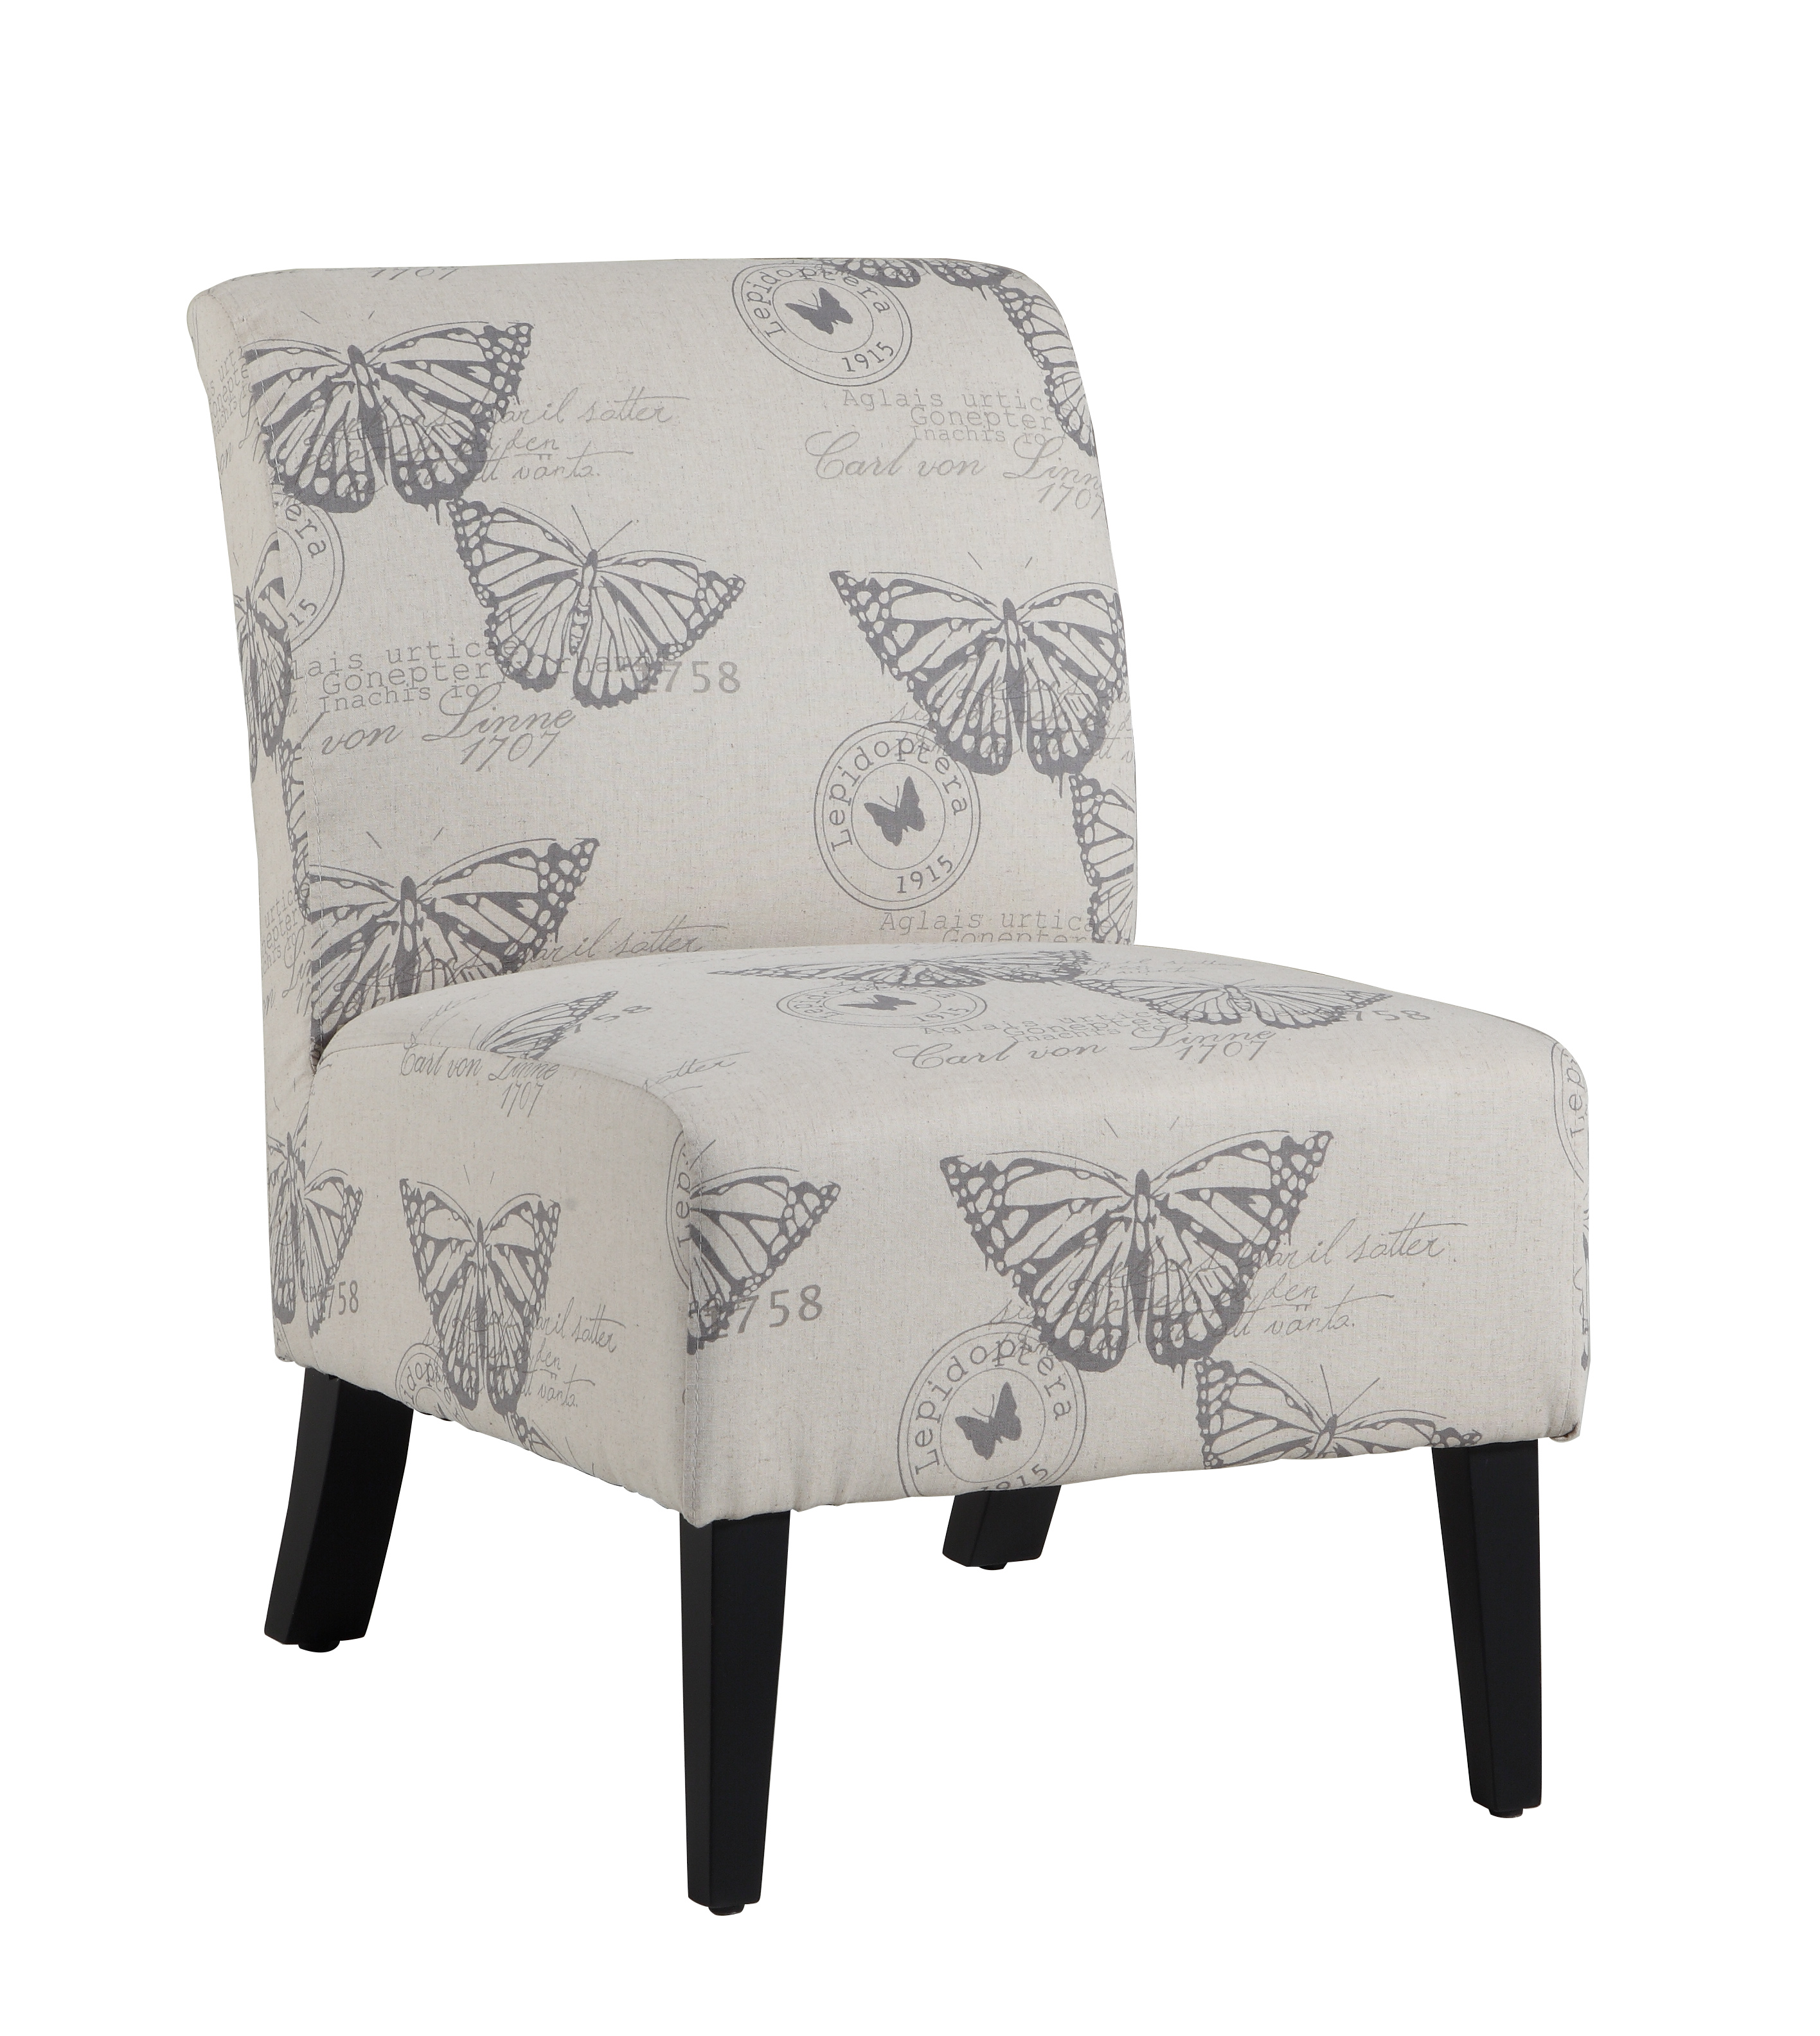 Linon Linen Butterfly Lily Chair, Multi